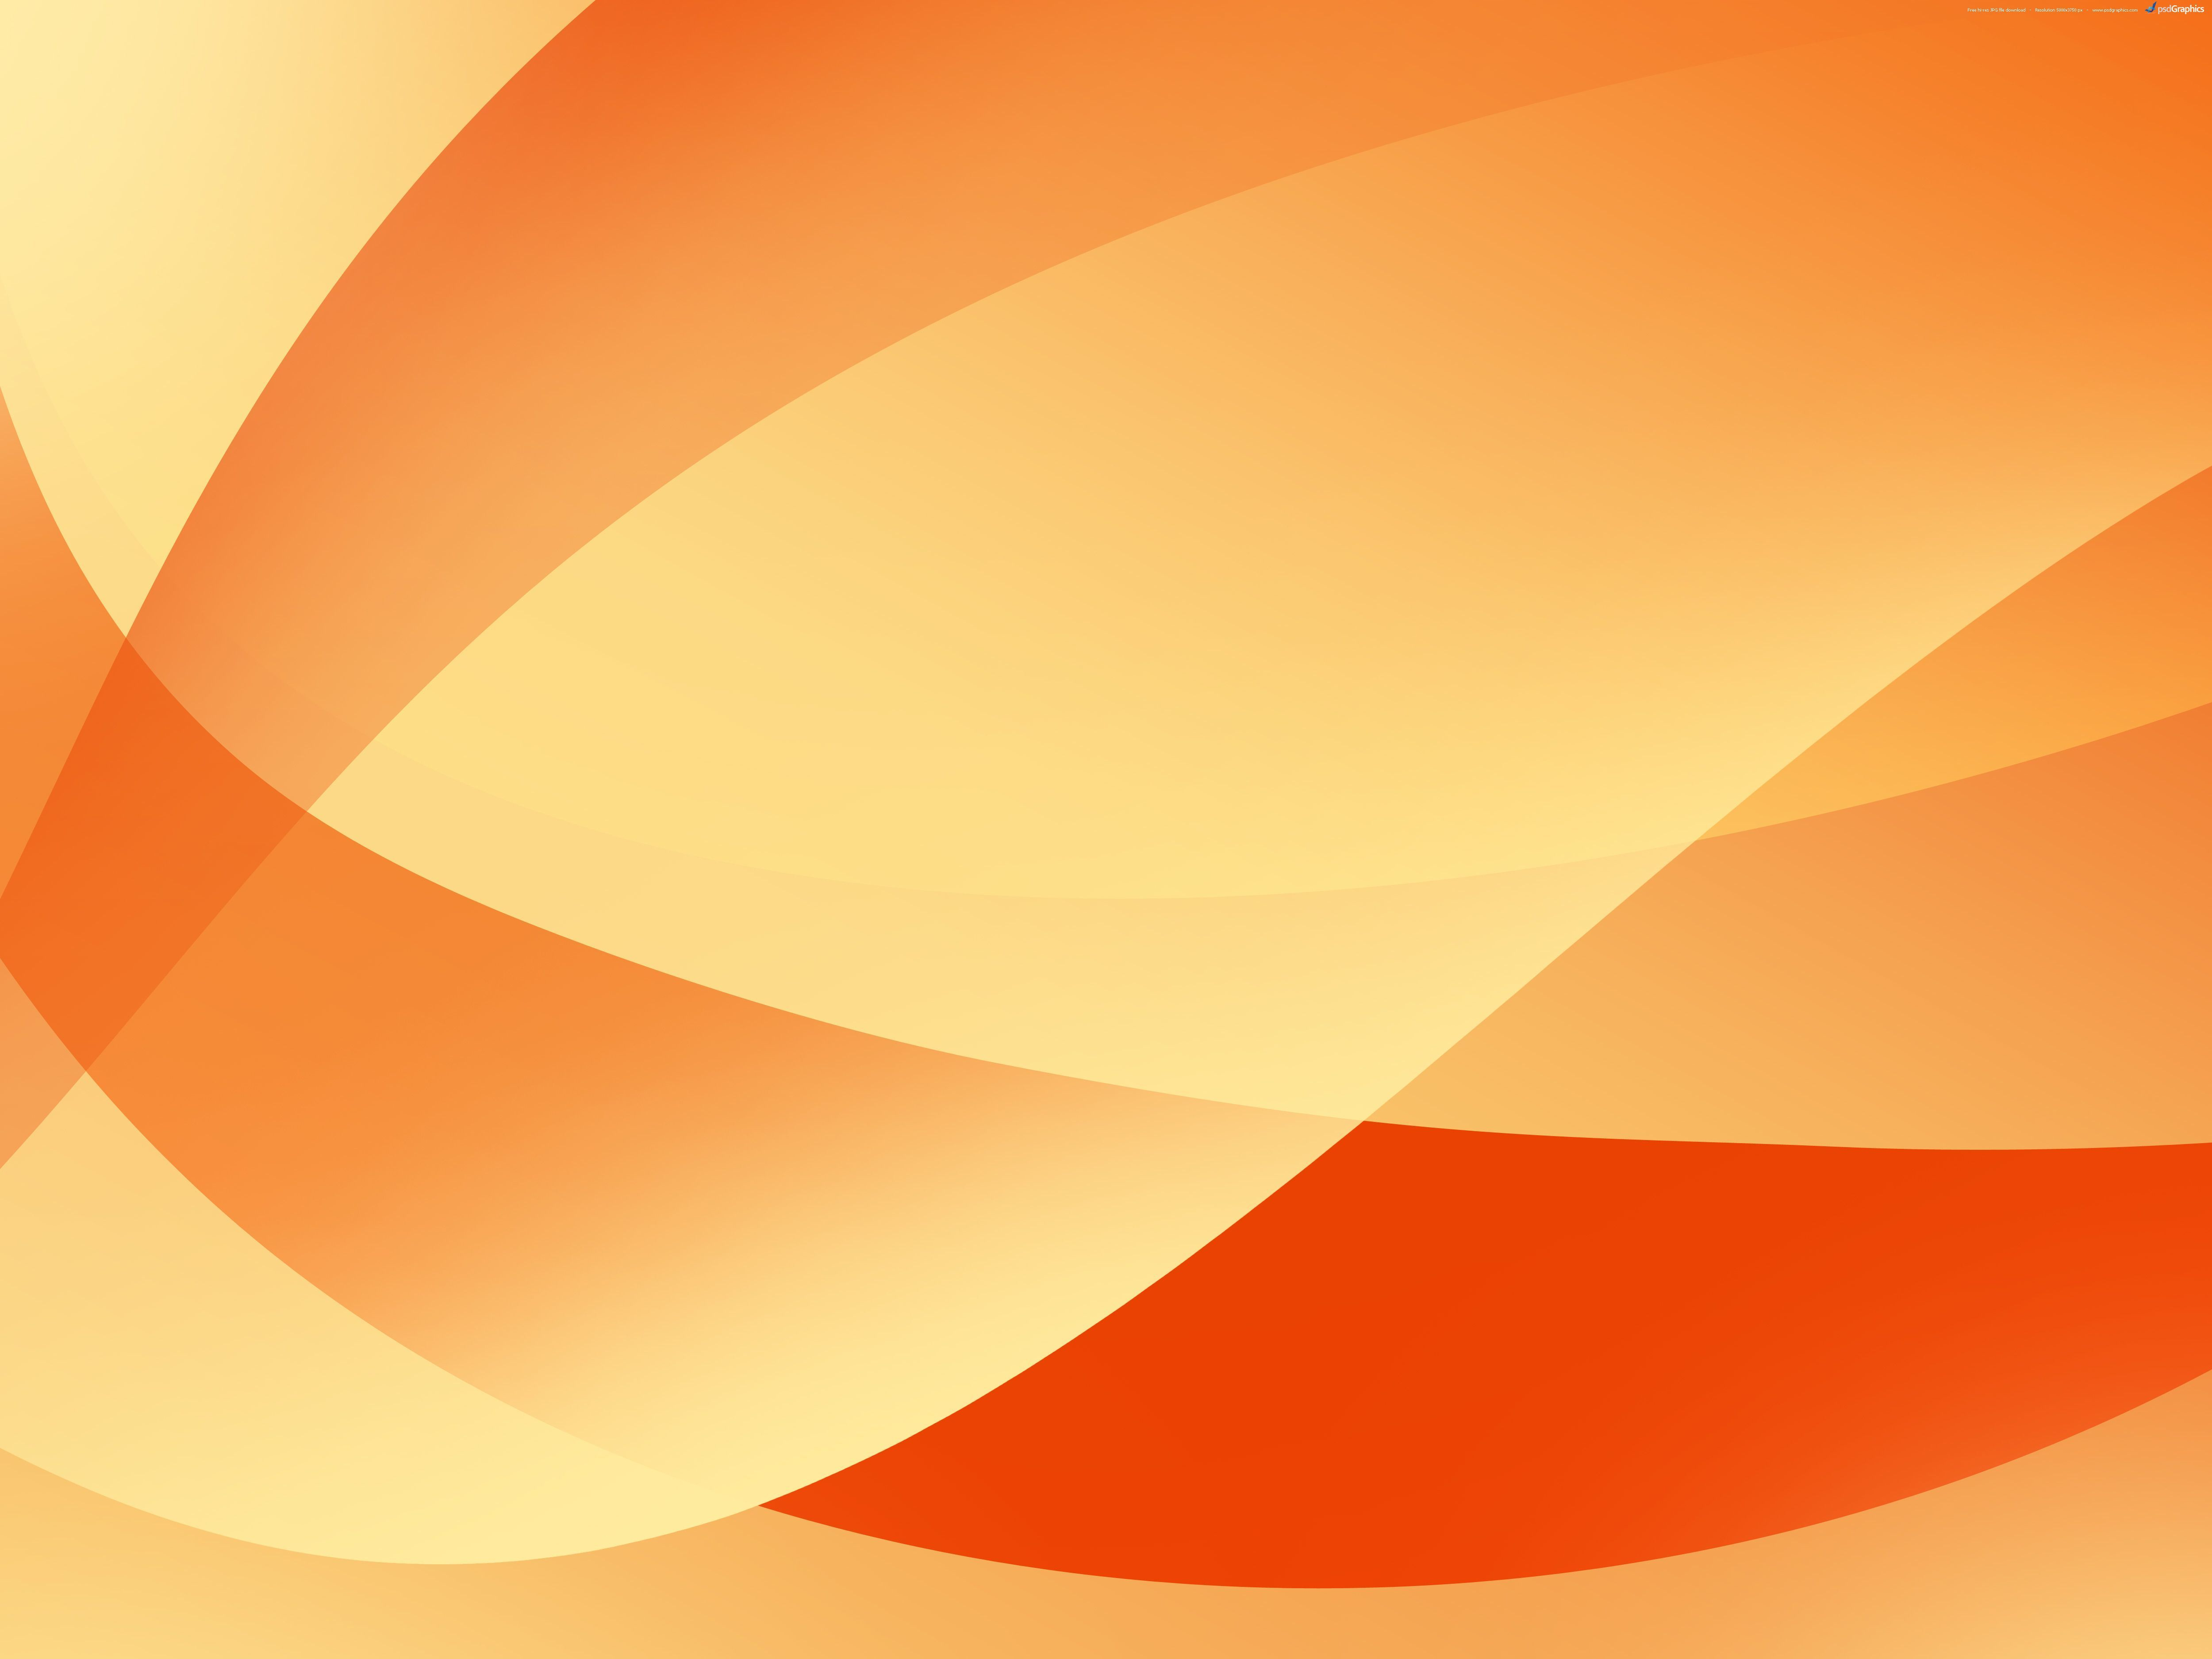 Abstract Orange Backgrounds Psdgraphics In 2019 Orange